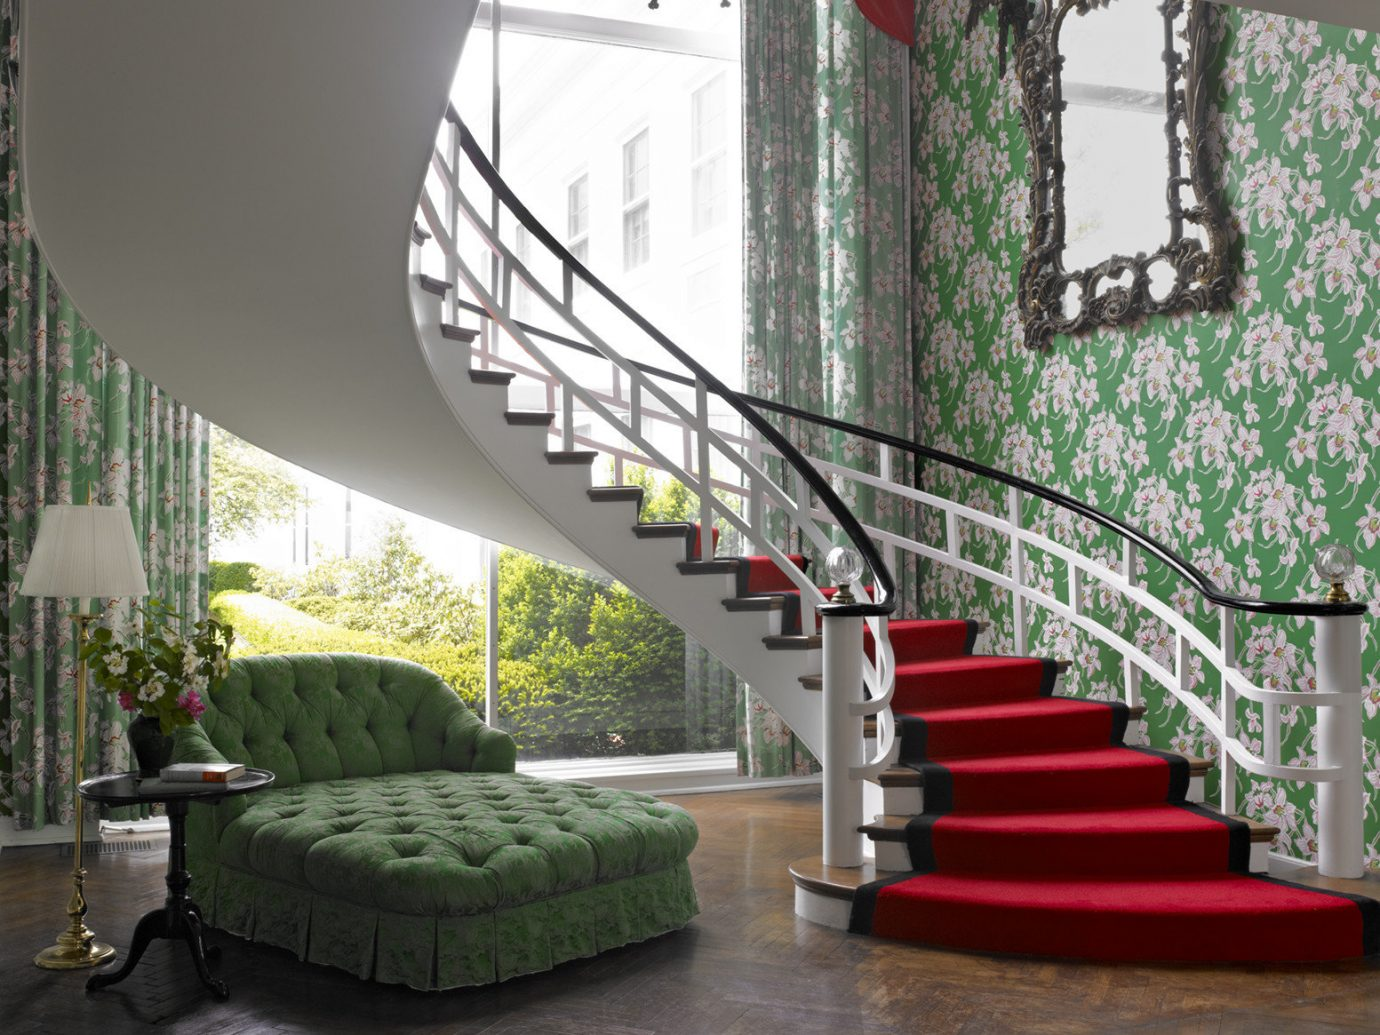 Trip Ideas stairs Architecture interior design Design furniture estate living room decorated